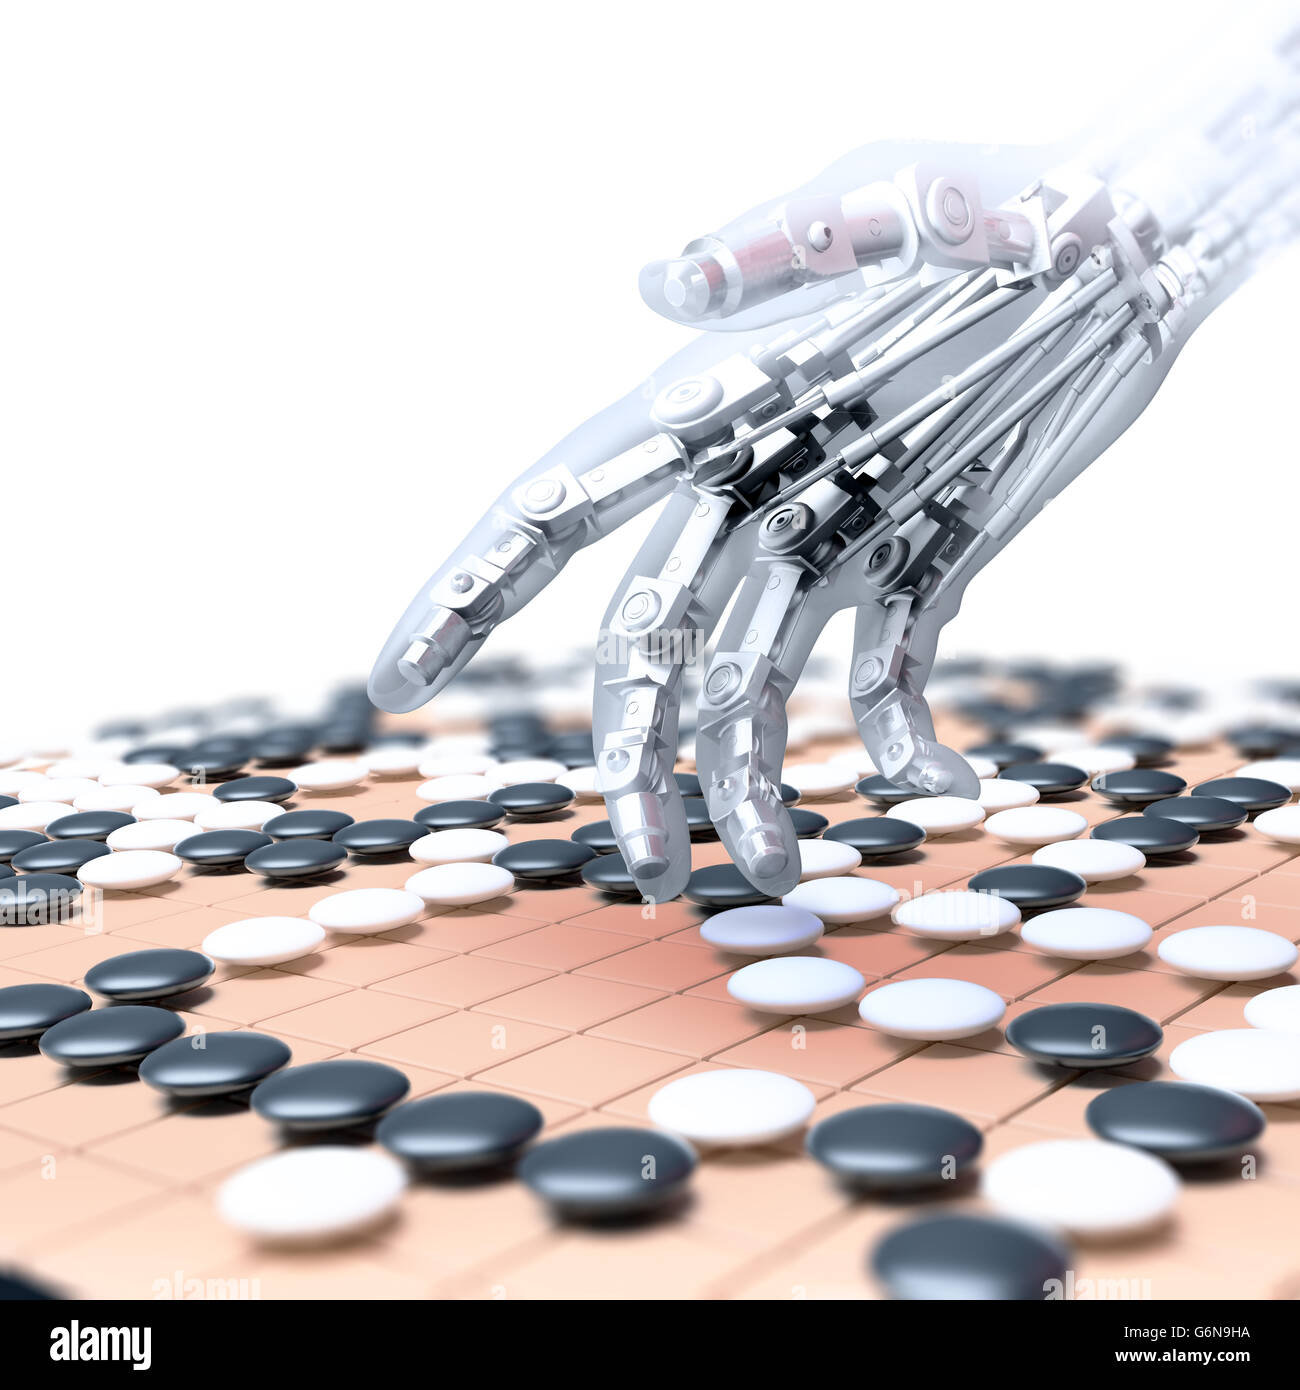 Artificial intelligence competing in the game of go - 3D illustration - Stock Image